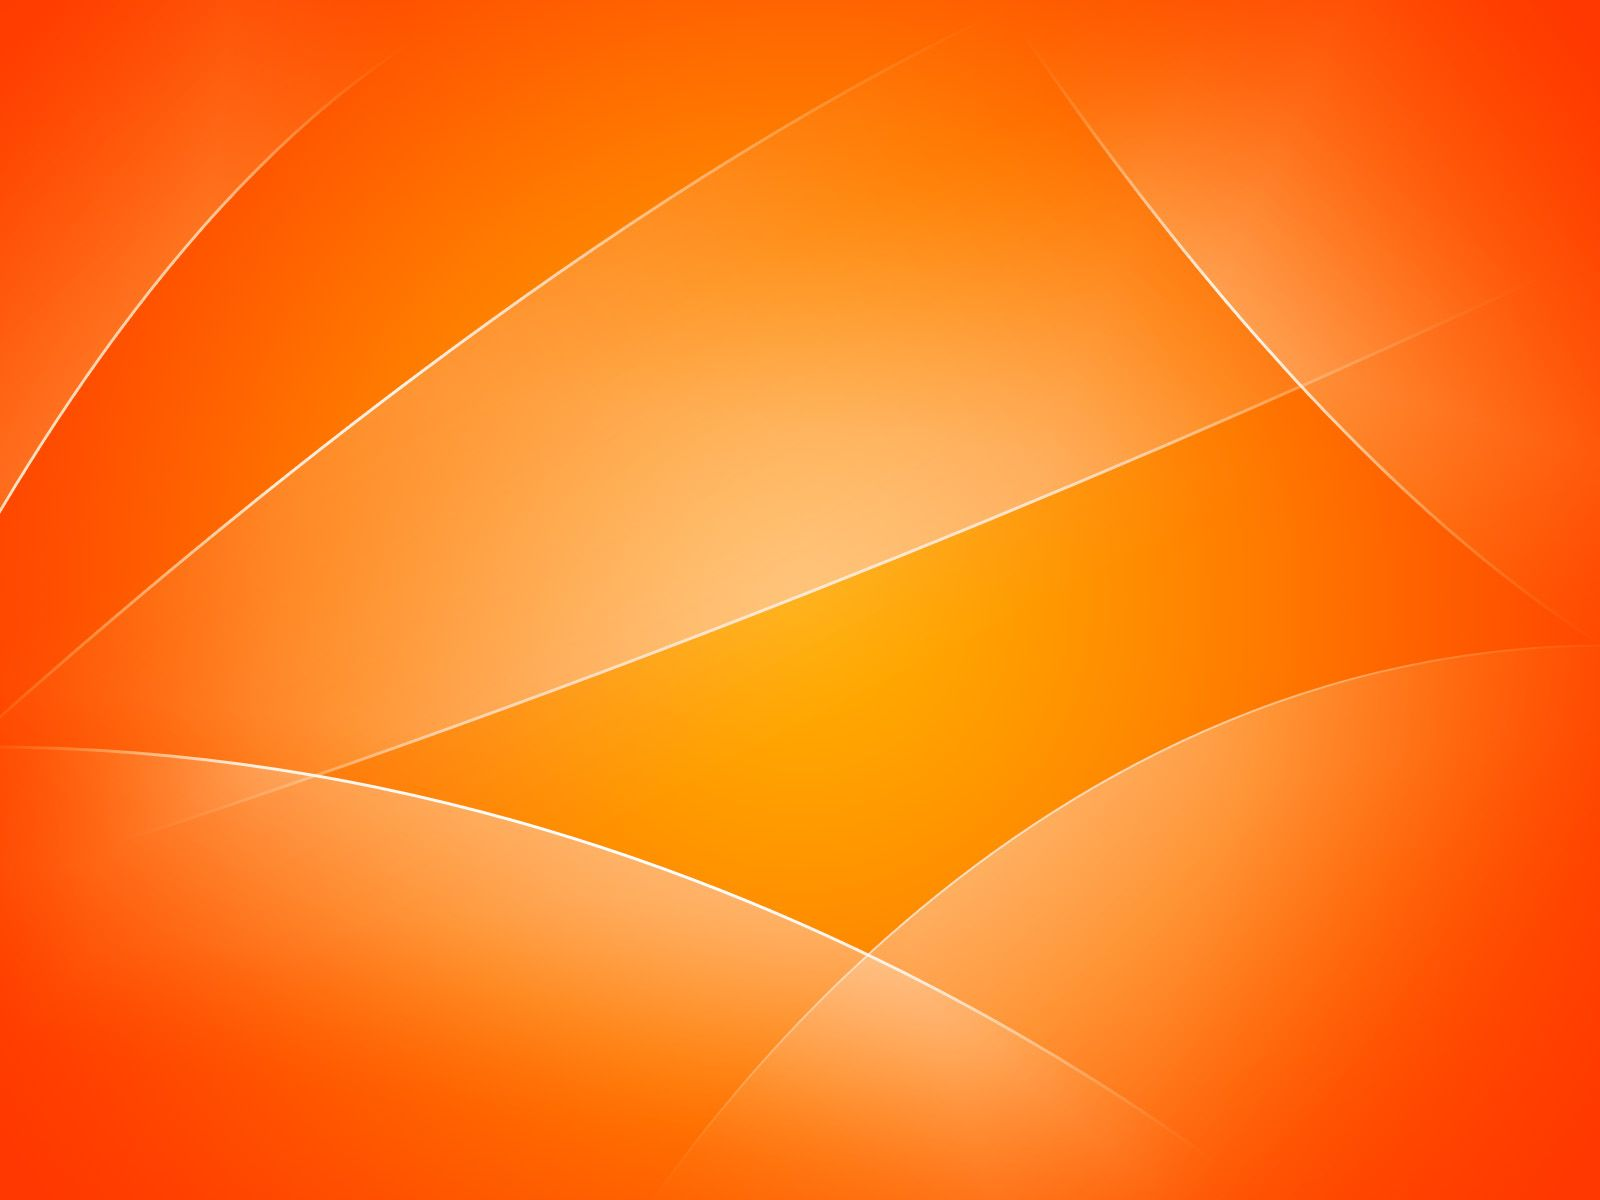 Backgrounds Wallpapers Hd Wallpapers Pics Orange Wallpaper Orange Background Iphone Wallpaper Orange